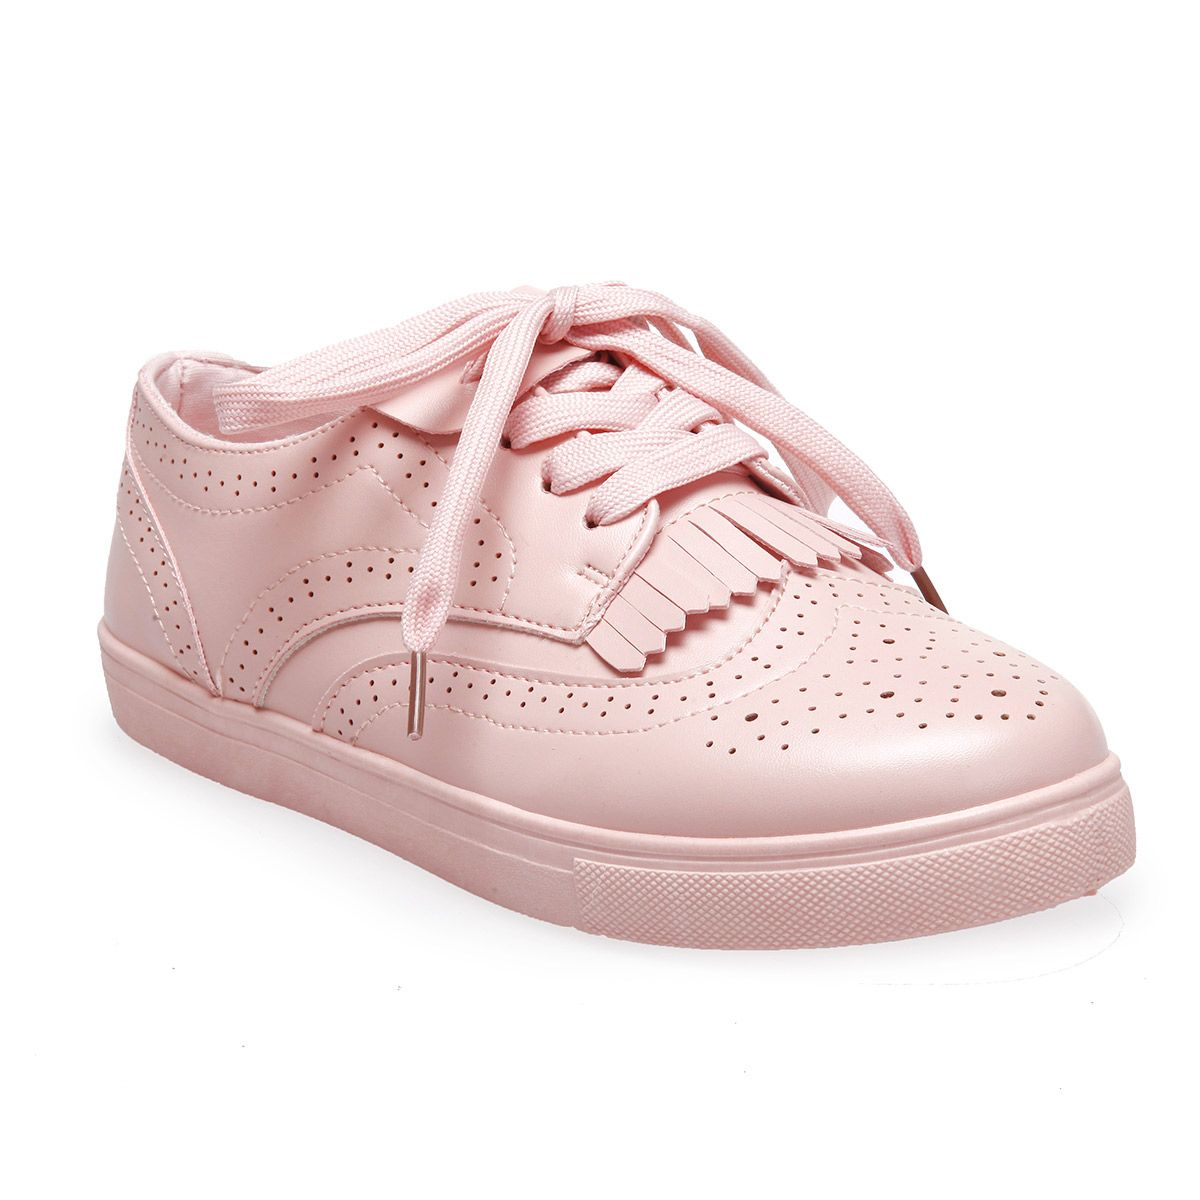 La Modeuse Baskets roses irisées à strass Rose - Chaussures Baskets basses Femme